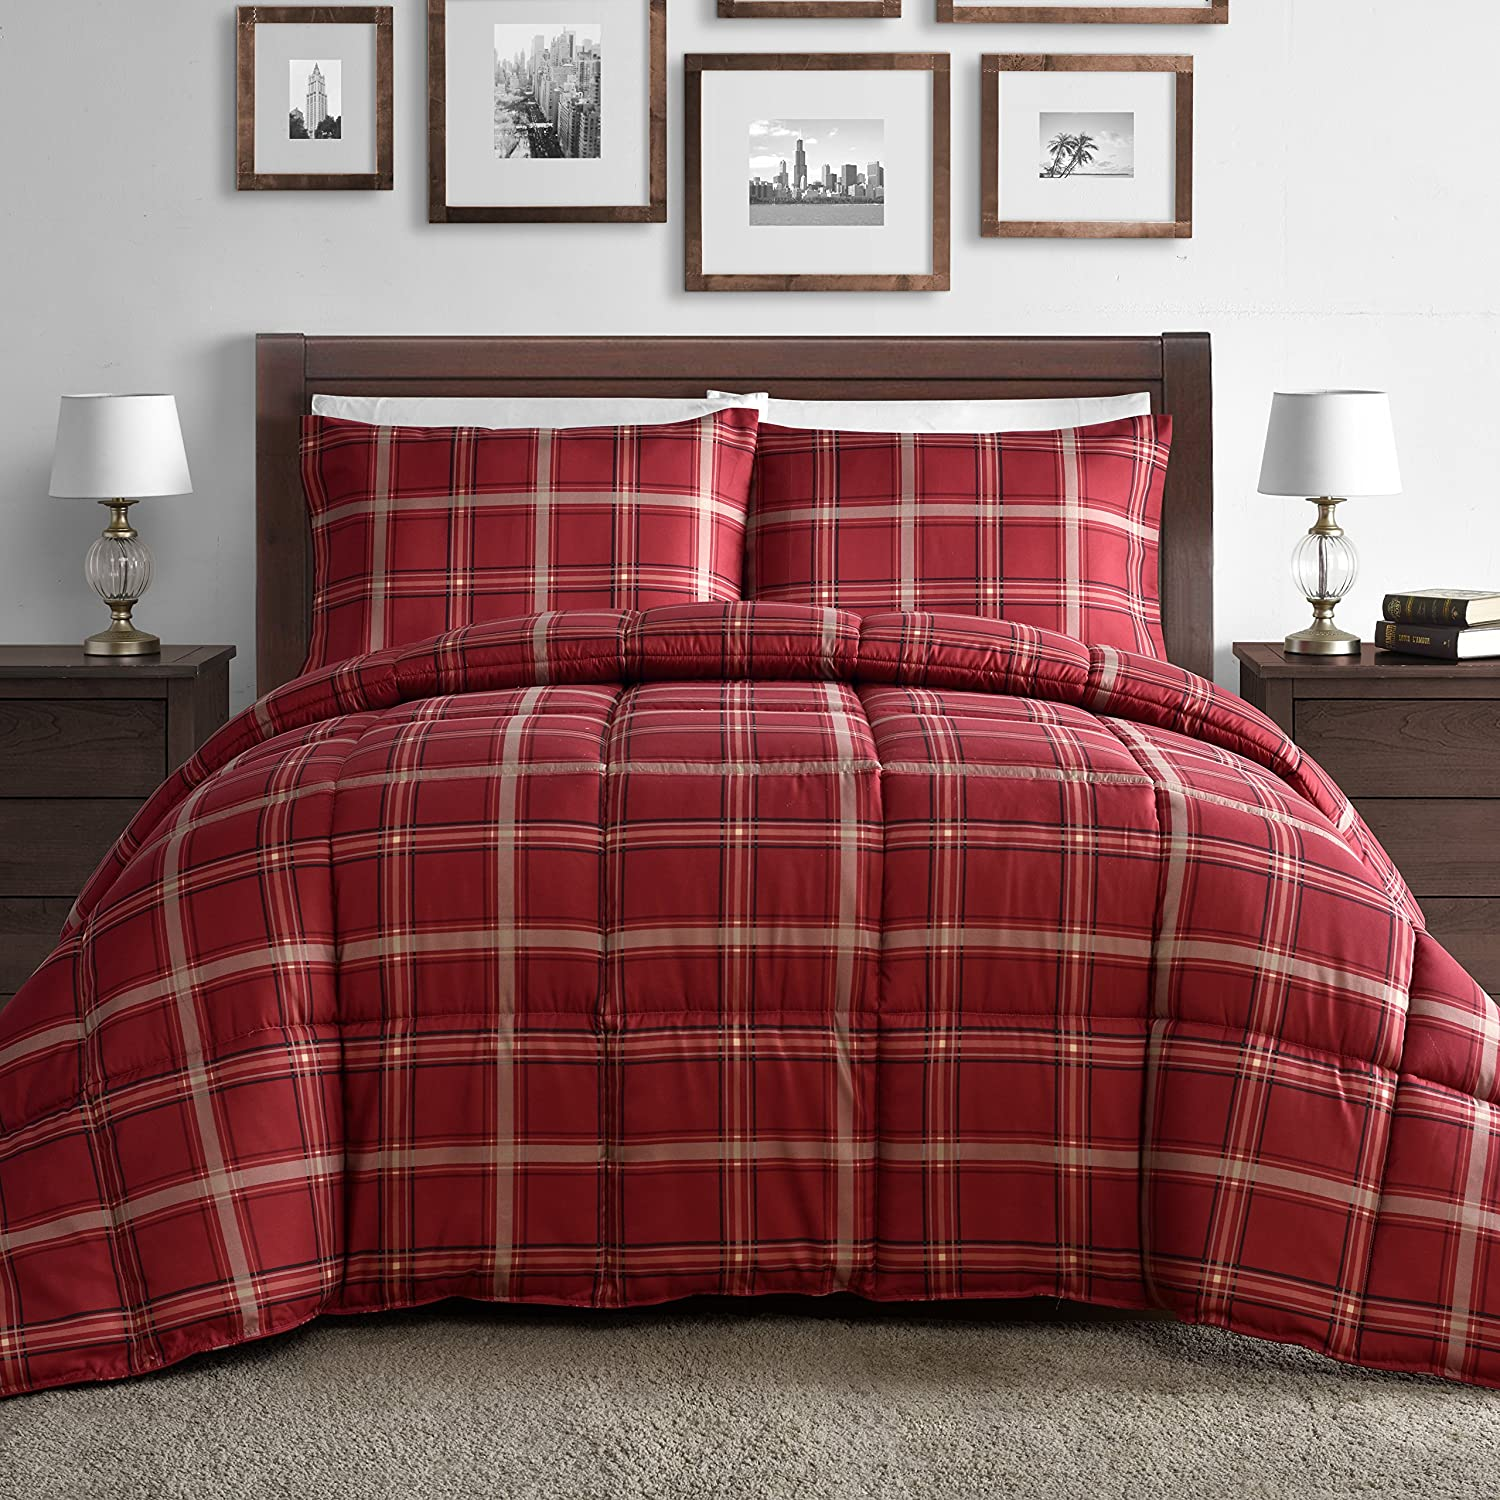 Comfy Bedding Luxurious Rose Red Plaid Down Alternative 3 Piece Comforter Set (King, Red)